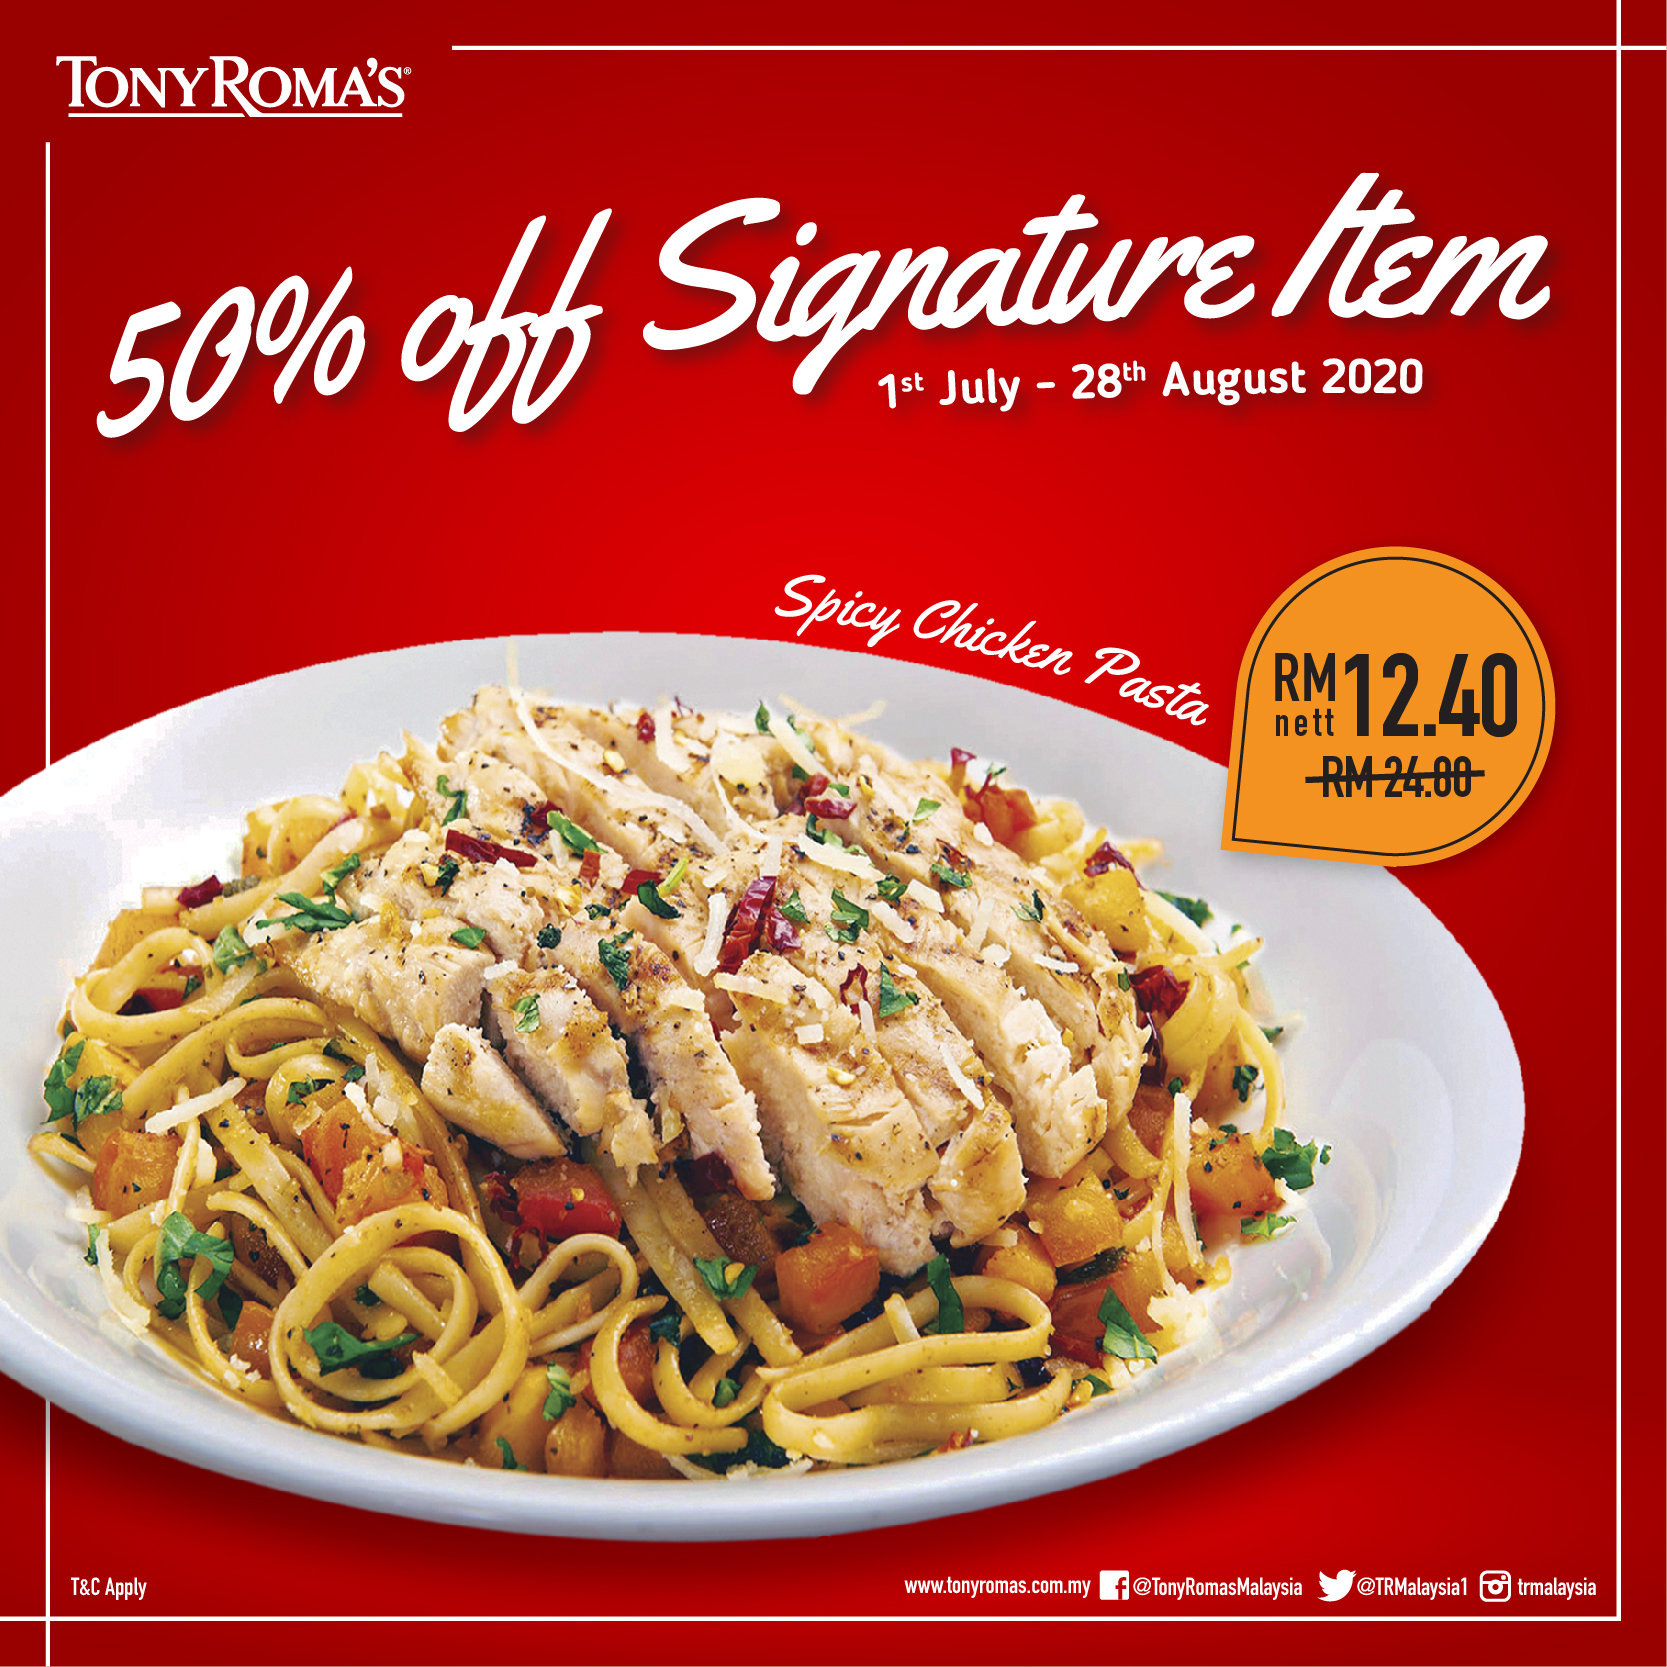 Tony-Romas-50-Off-Signature-Item-Spicy-Chicken-Pasta